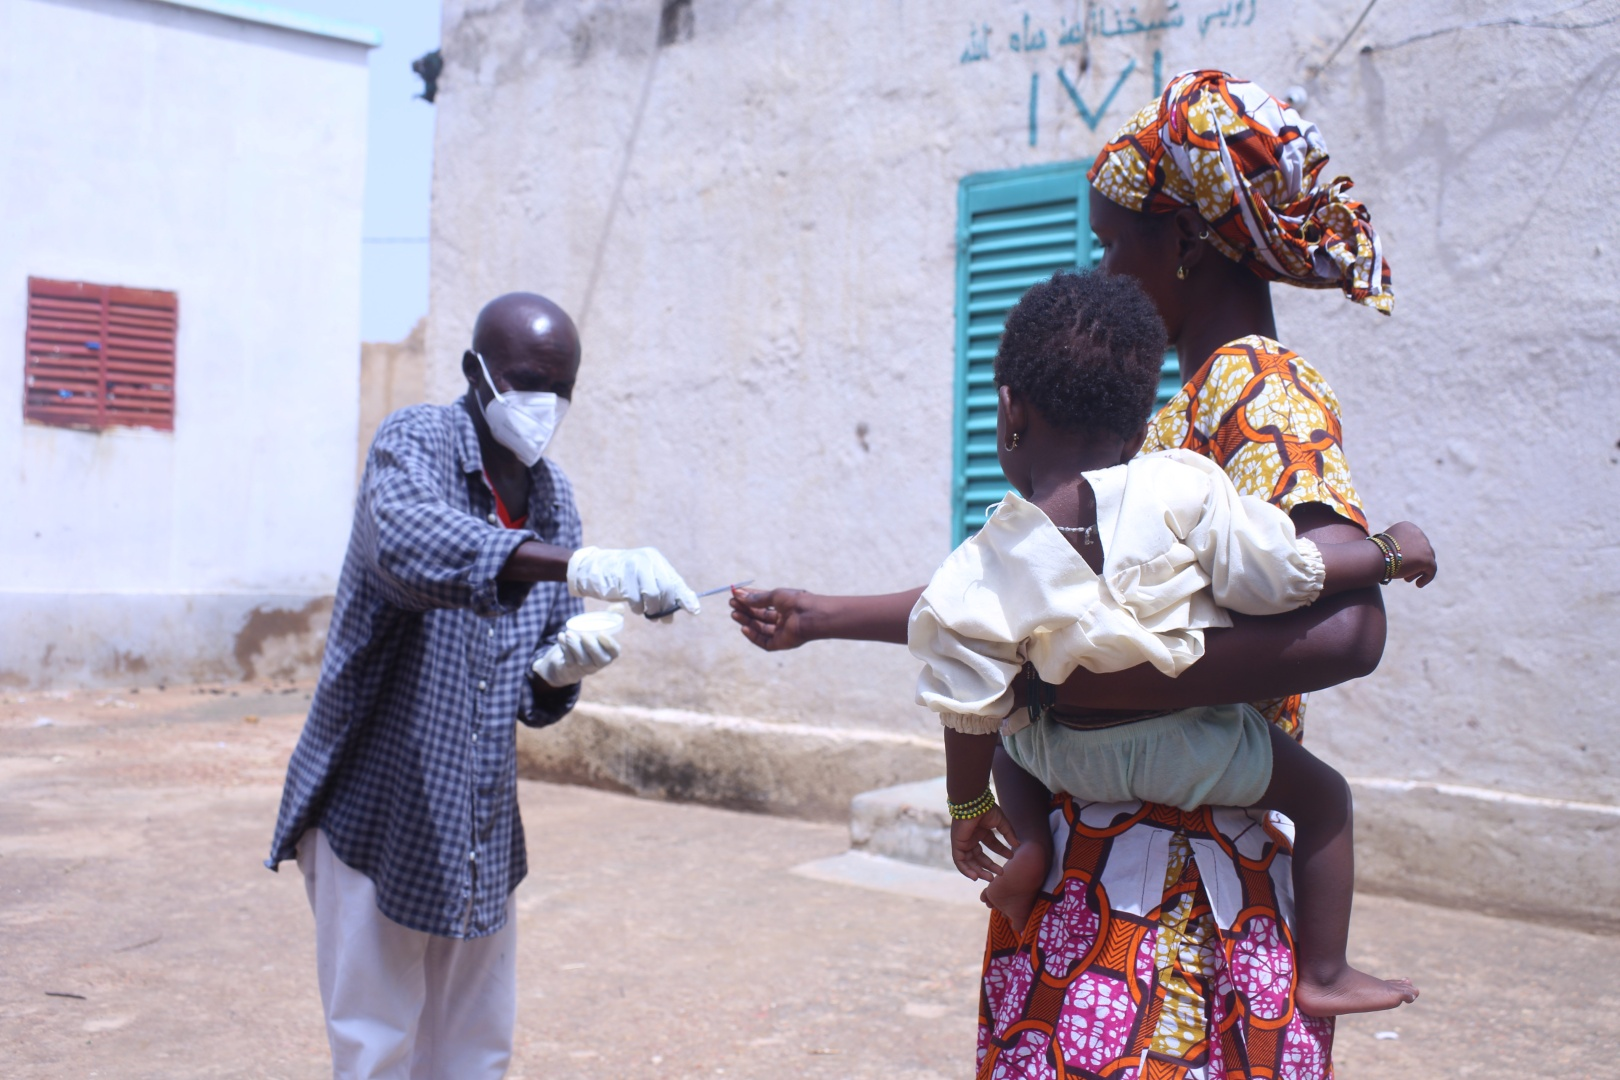 A health worker distances himself while preparing to deliver a dose of vitamin A to a young child being held by its mother